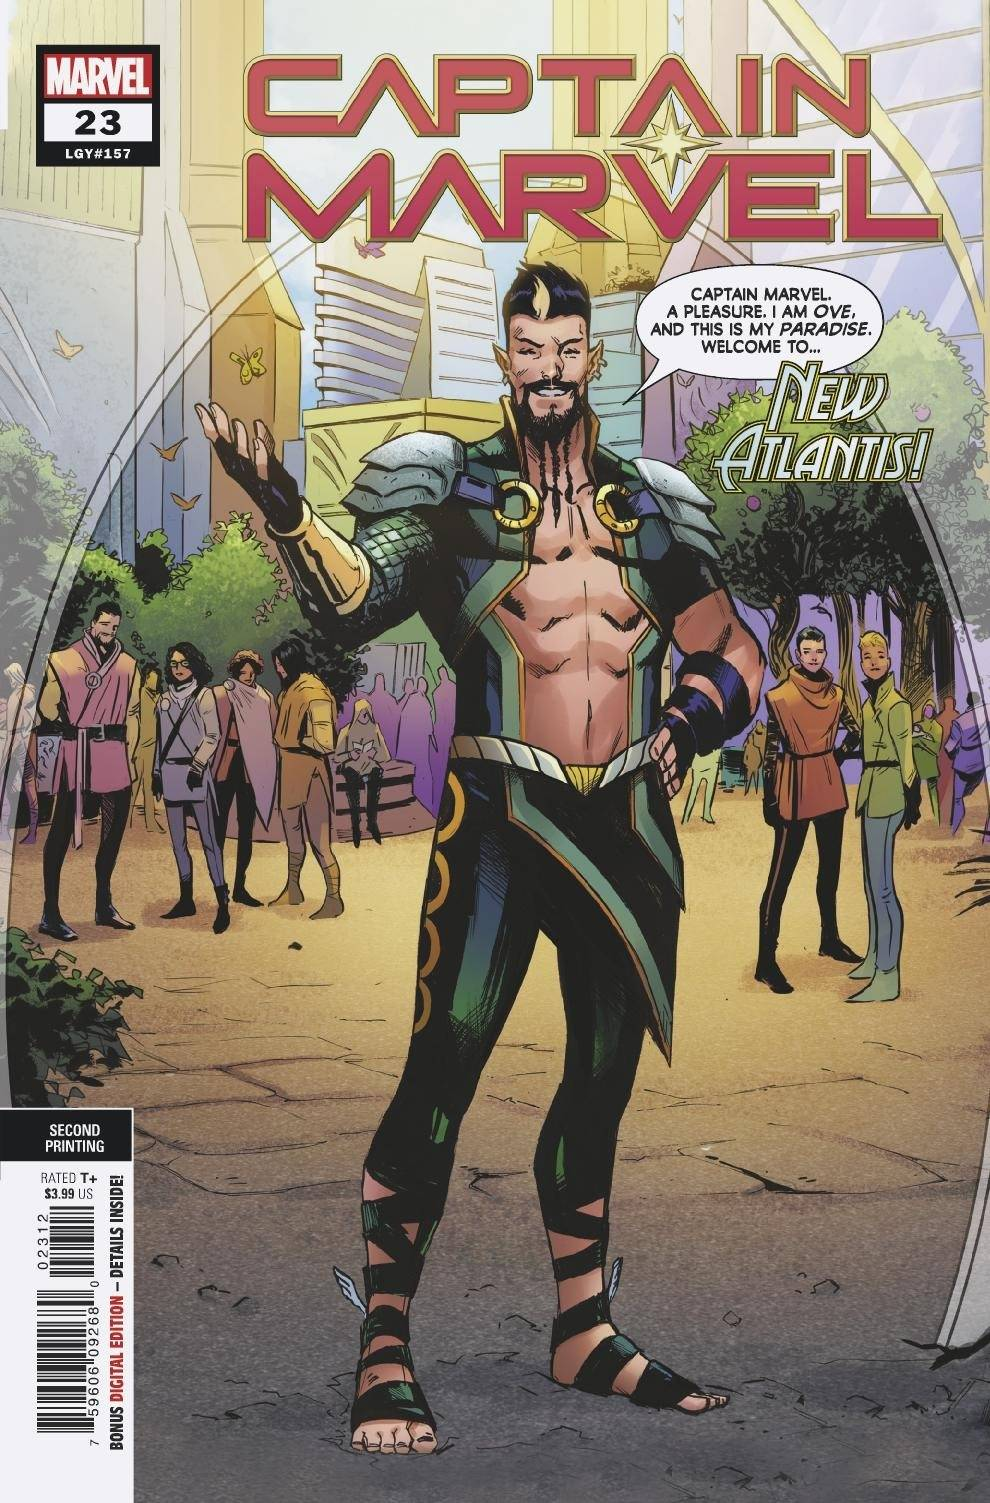 STL178672 ComicList: Marvel Comics New Releases for 12/30/2020